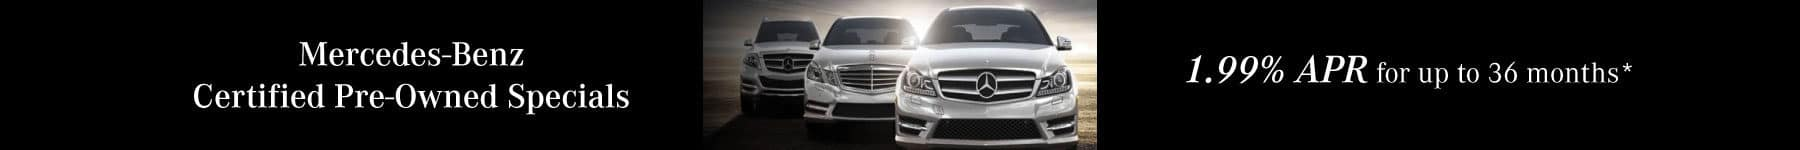 mercedes-benz of fort washington new 2021 2022 mercedes new lease specials